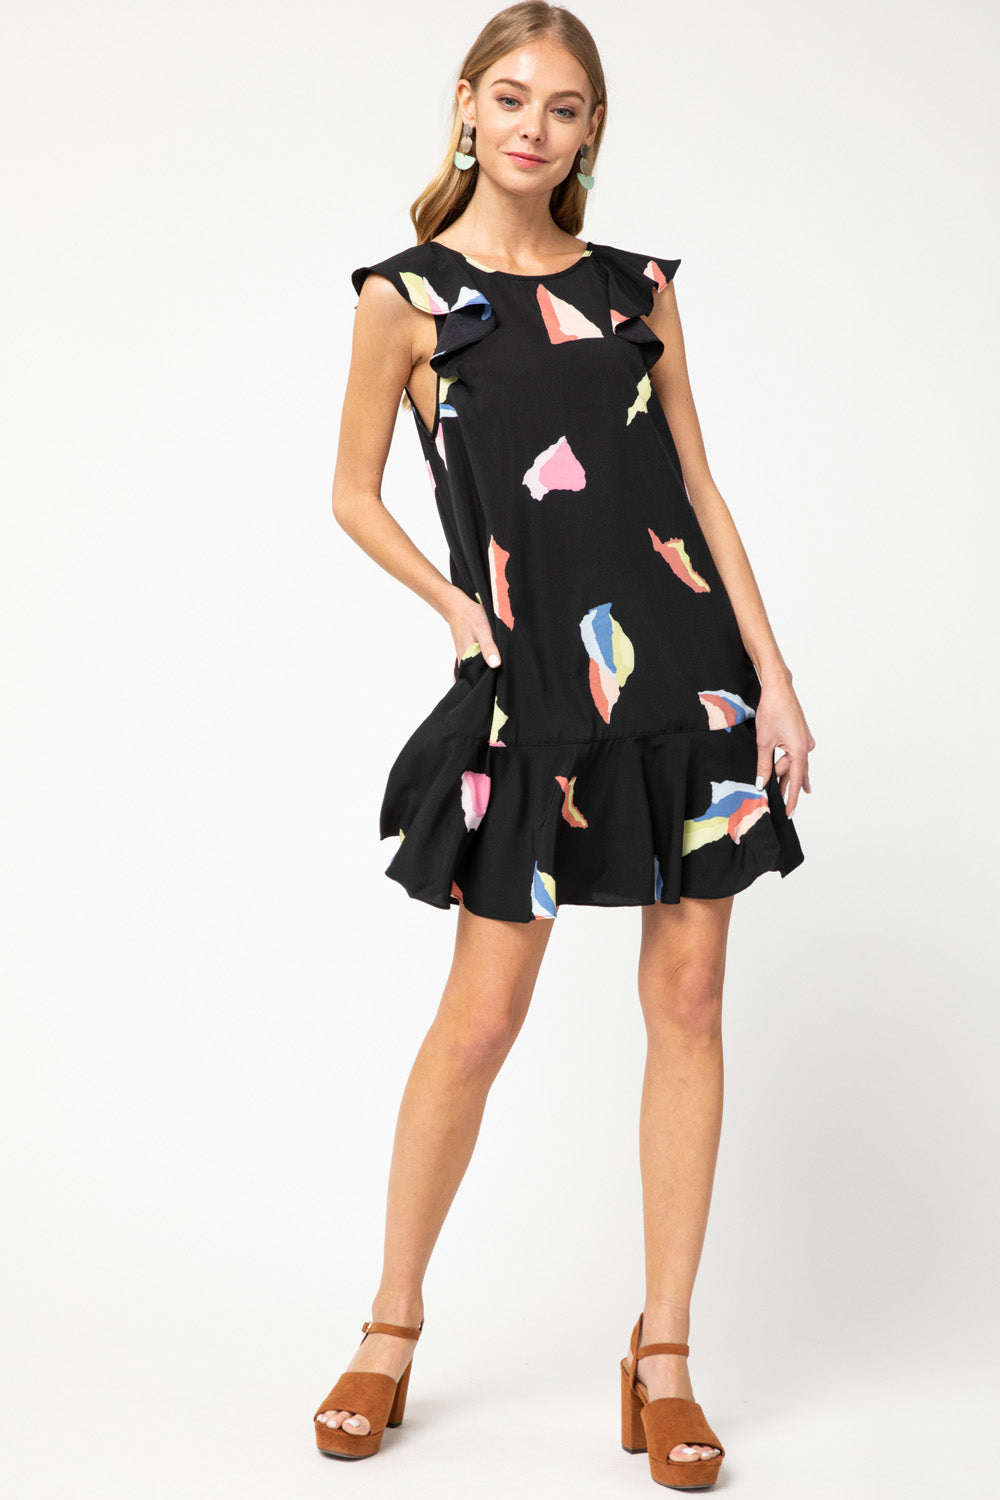 Janie Dress - Black